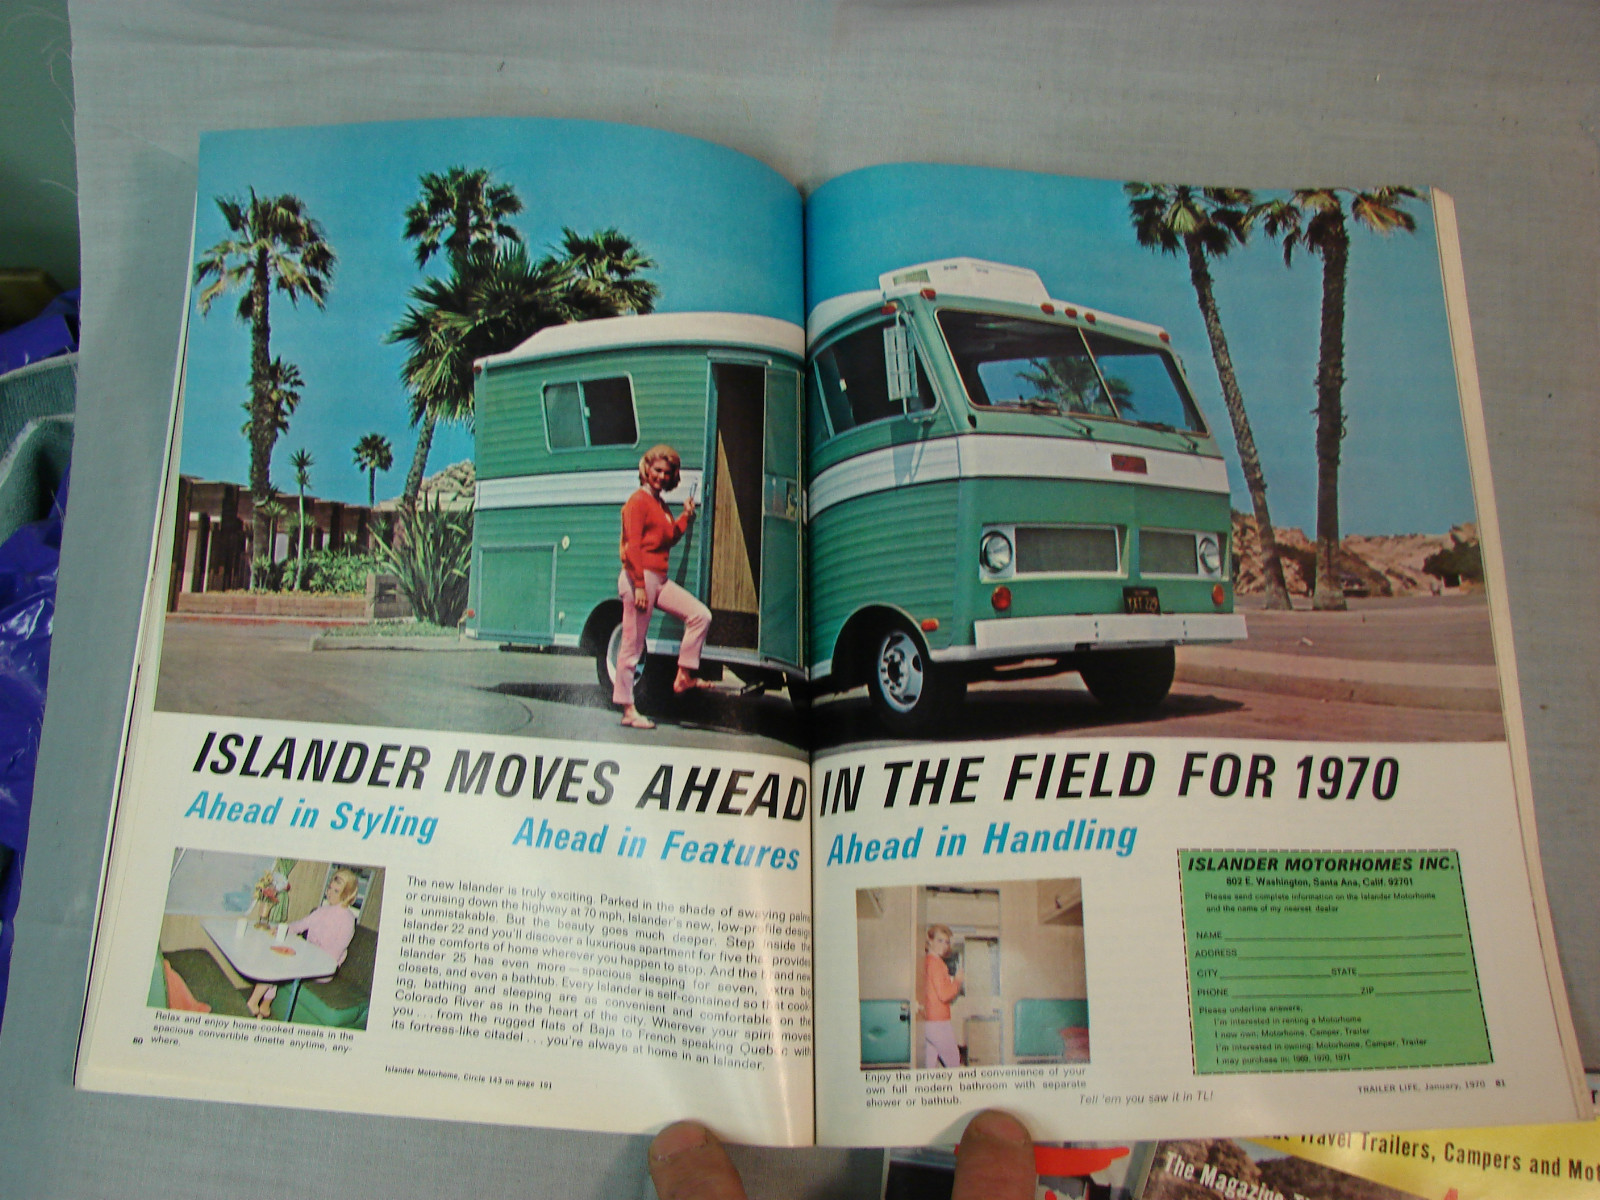 medium resolution of keep in mind this is the very early 1970s and motorhomes were everywhere and the love of the rv lifestyle was shared by alot of people even silently in lieu